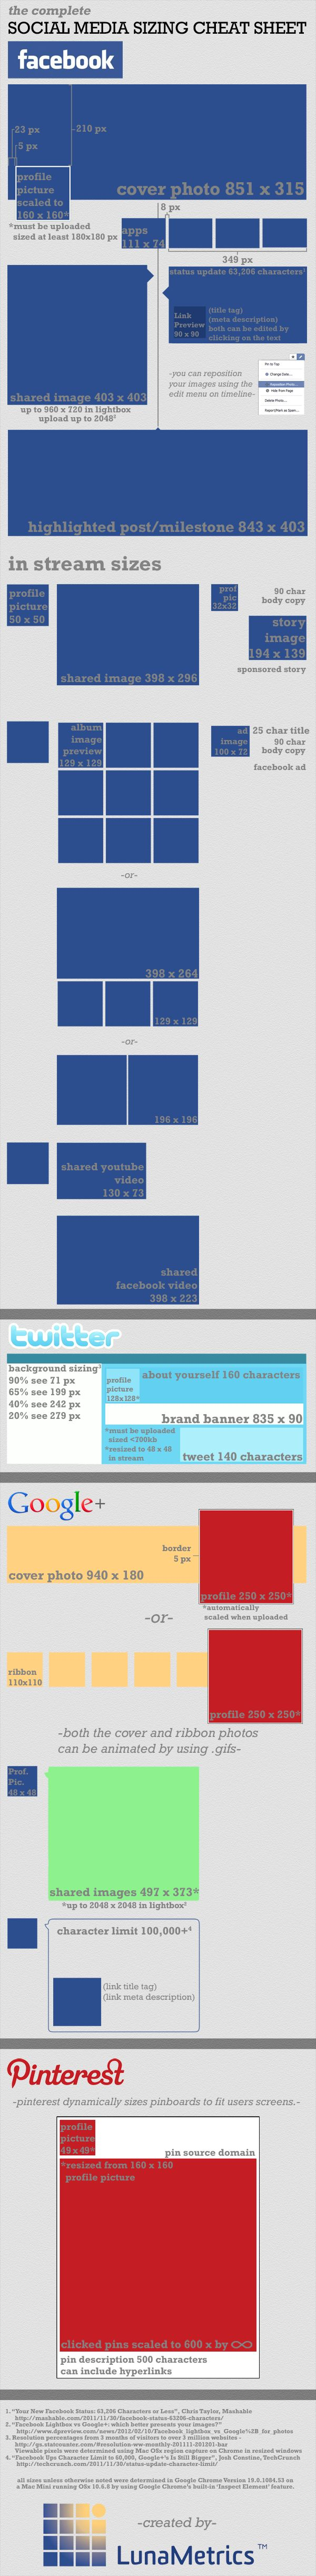 The complete social media sizing cheat sheet (Facebook, Twitter, Google+, Pinterest)